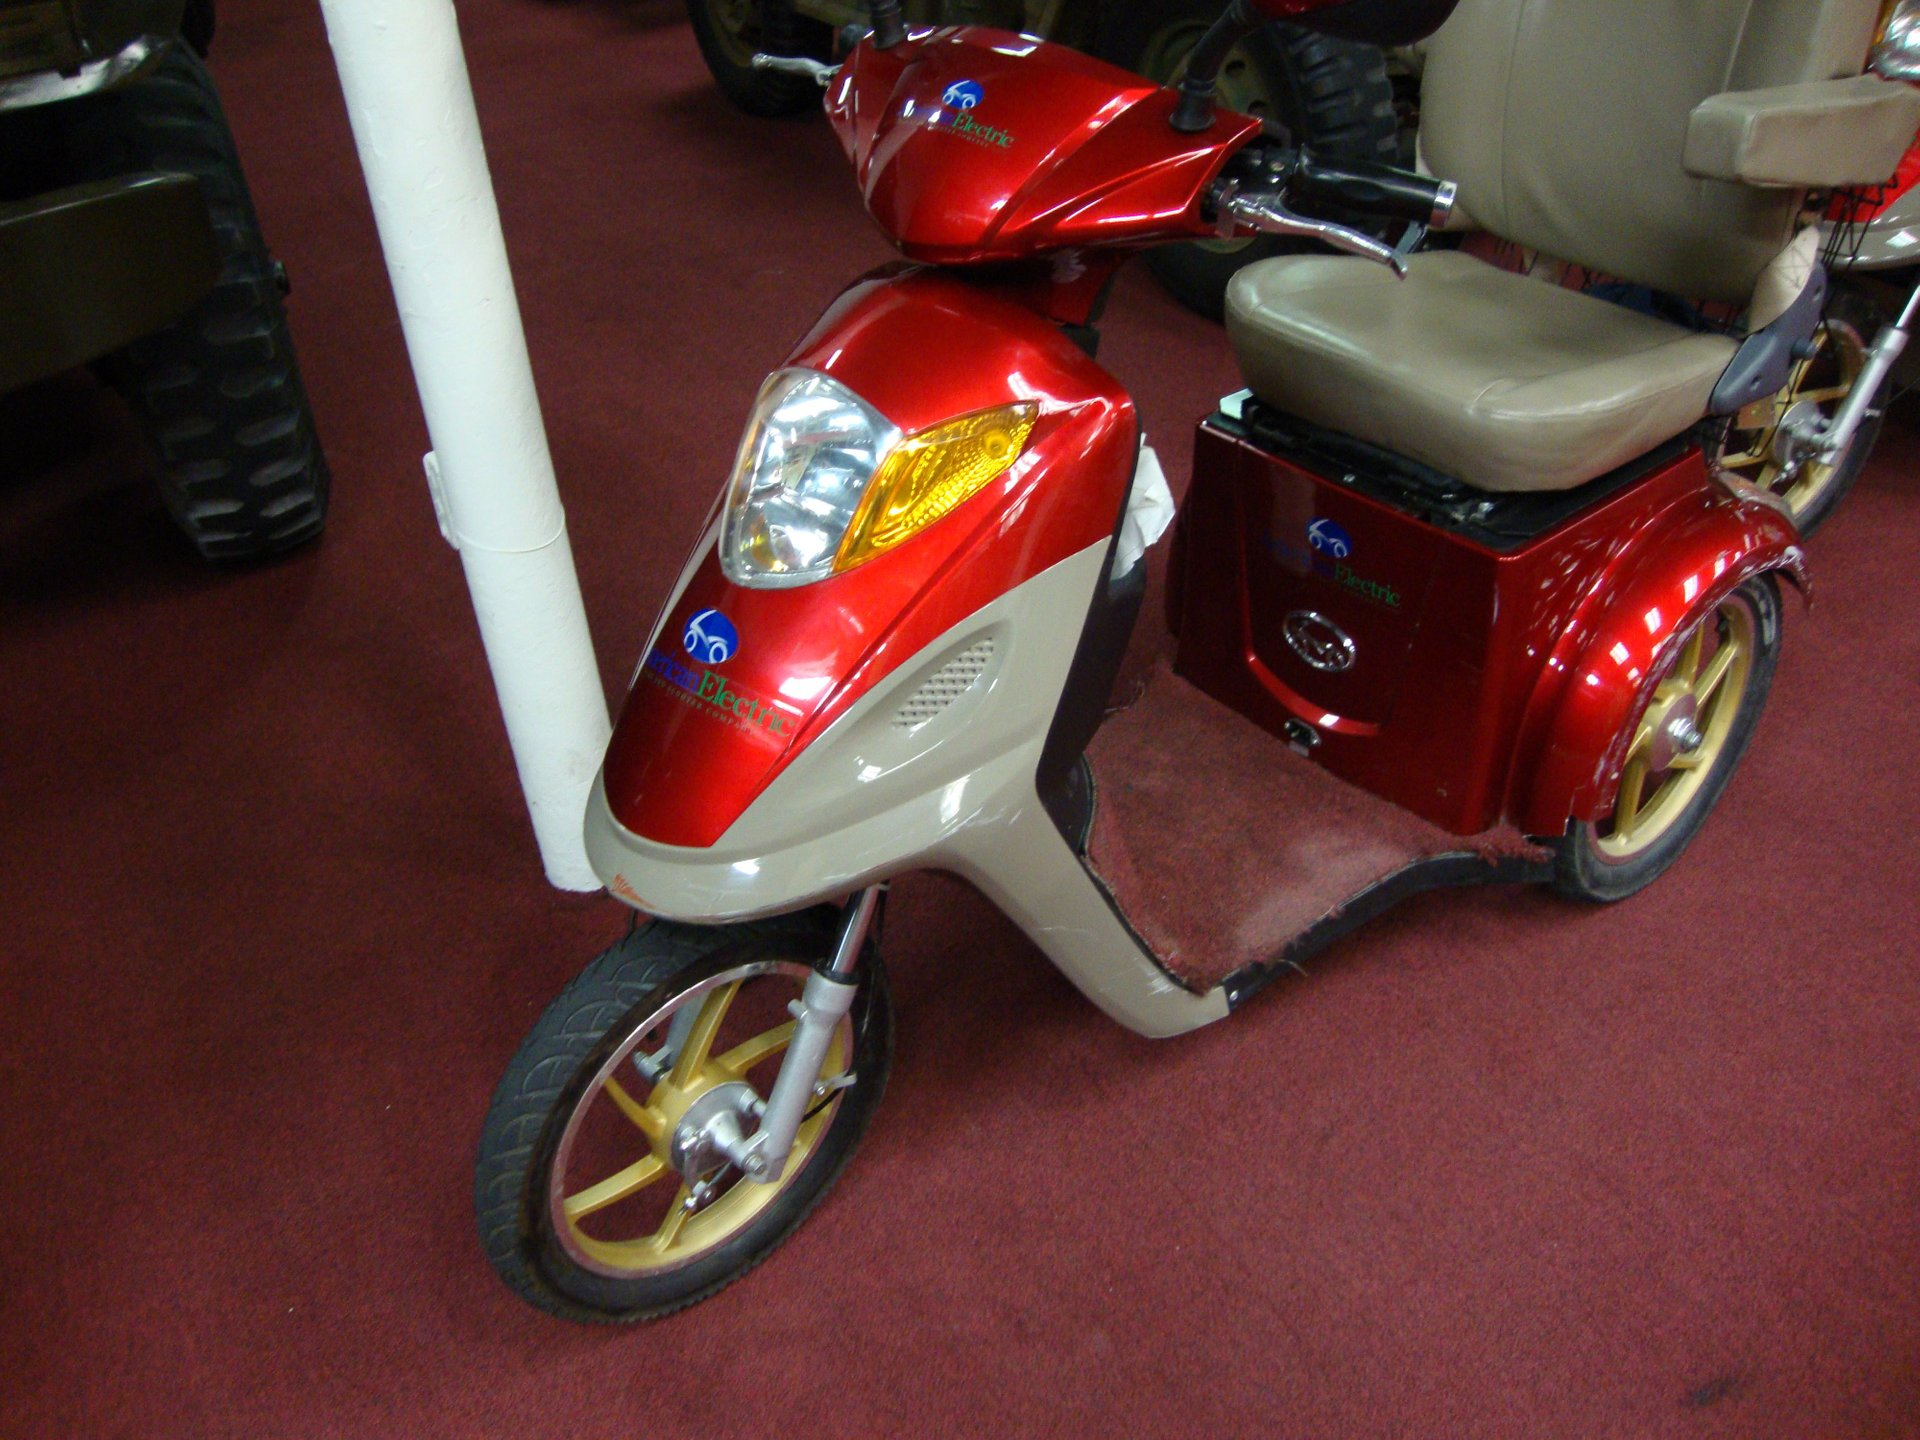 American electric scooter